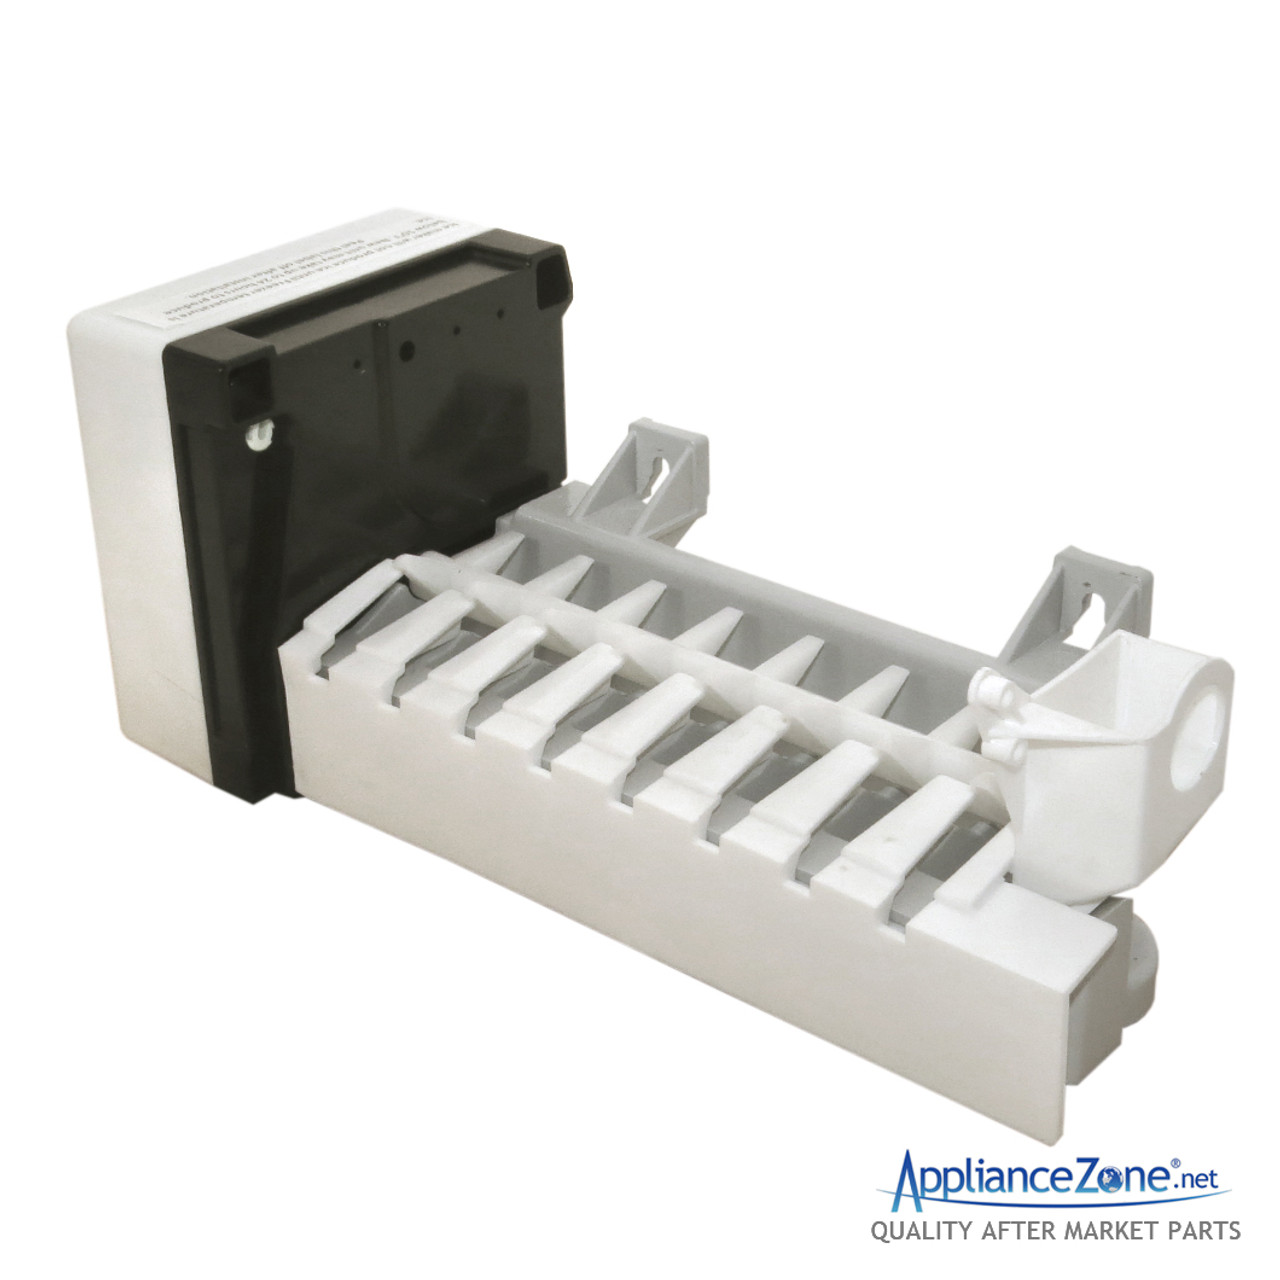 REPLACEMENT ICEMAKER FOR WHIRLPOOL W10300022  WPW10300022